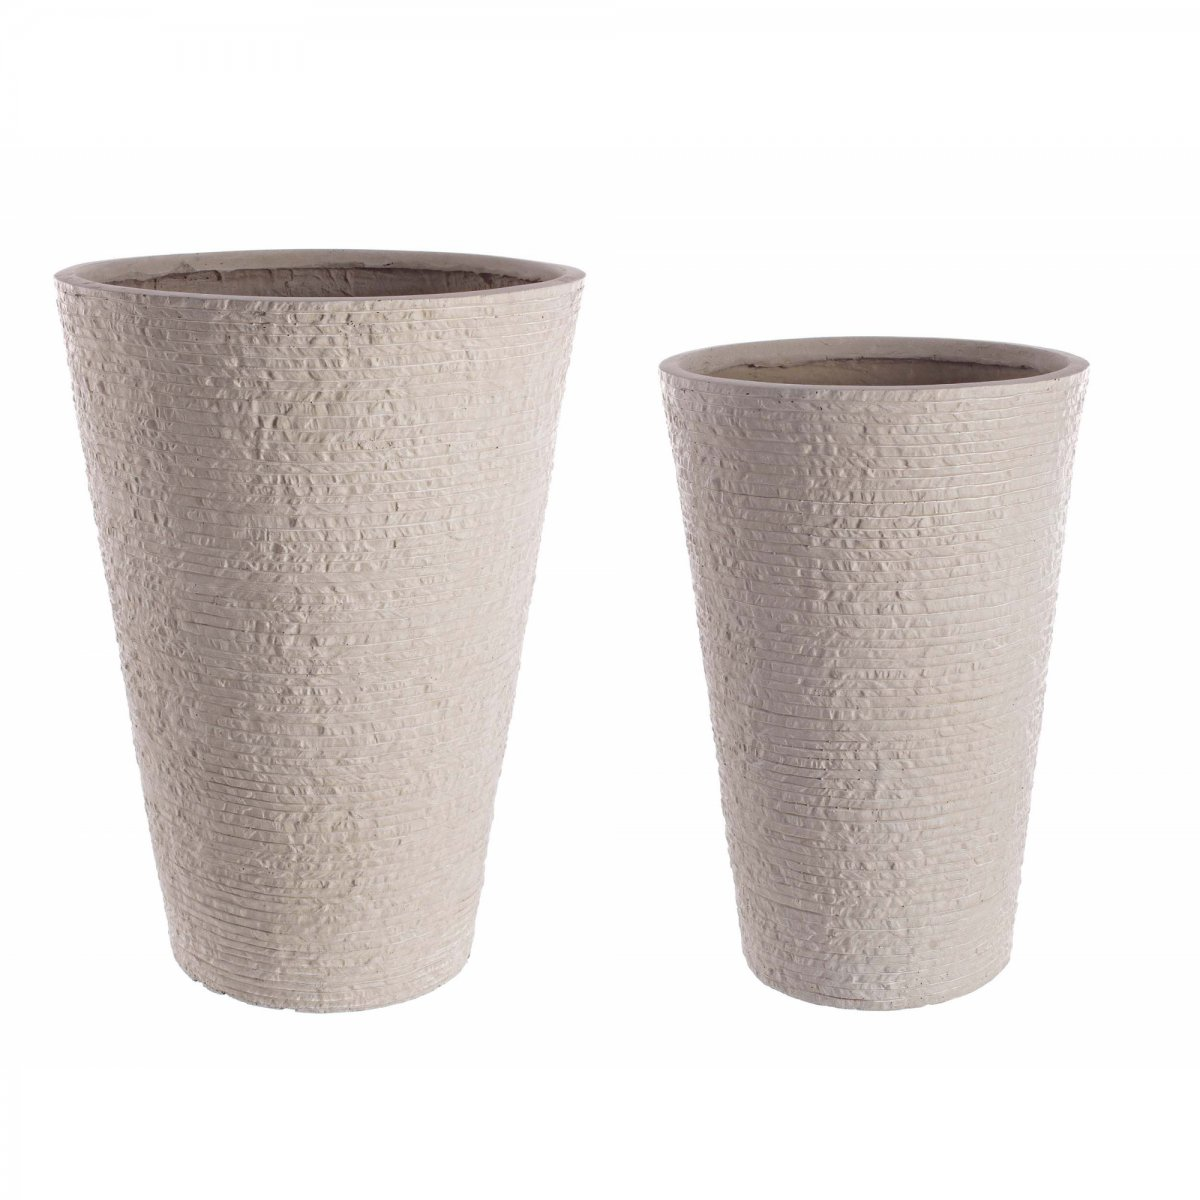 Bizzotto Home Emotion SET2 VASO ROCCIA ALTO NATURA